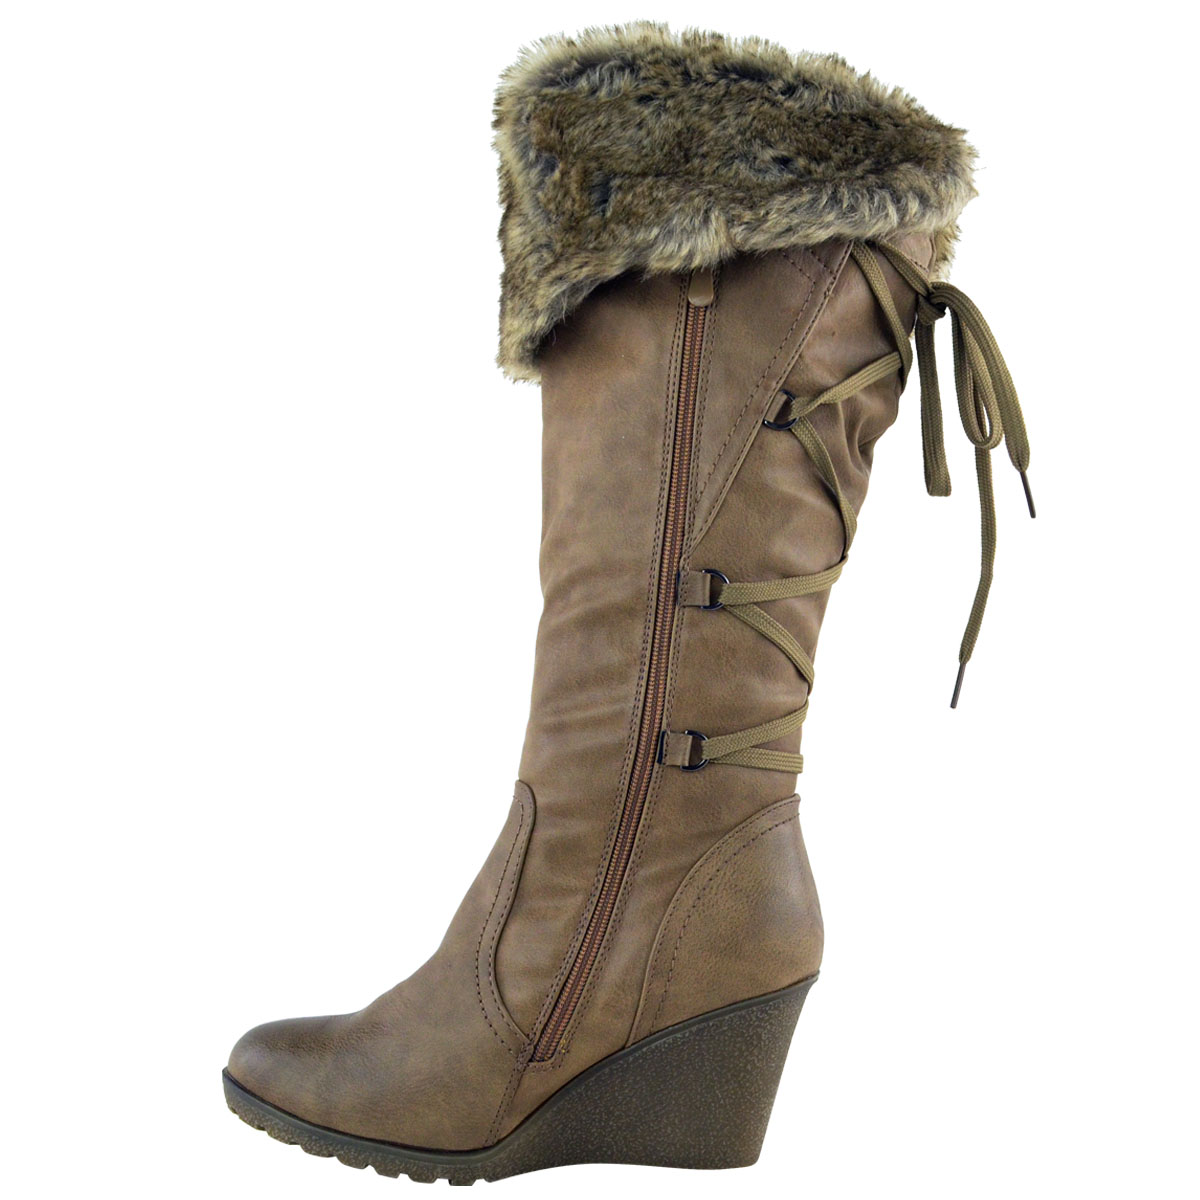 WOMENS-LADIES-MID-WEDGE-HIGH-HEEL-FUR-LINED-WARM-WINTER-KNEE-CALF-ZIP-BOOTS-SIZE thumbnail 12